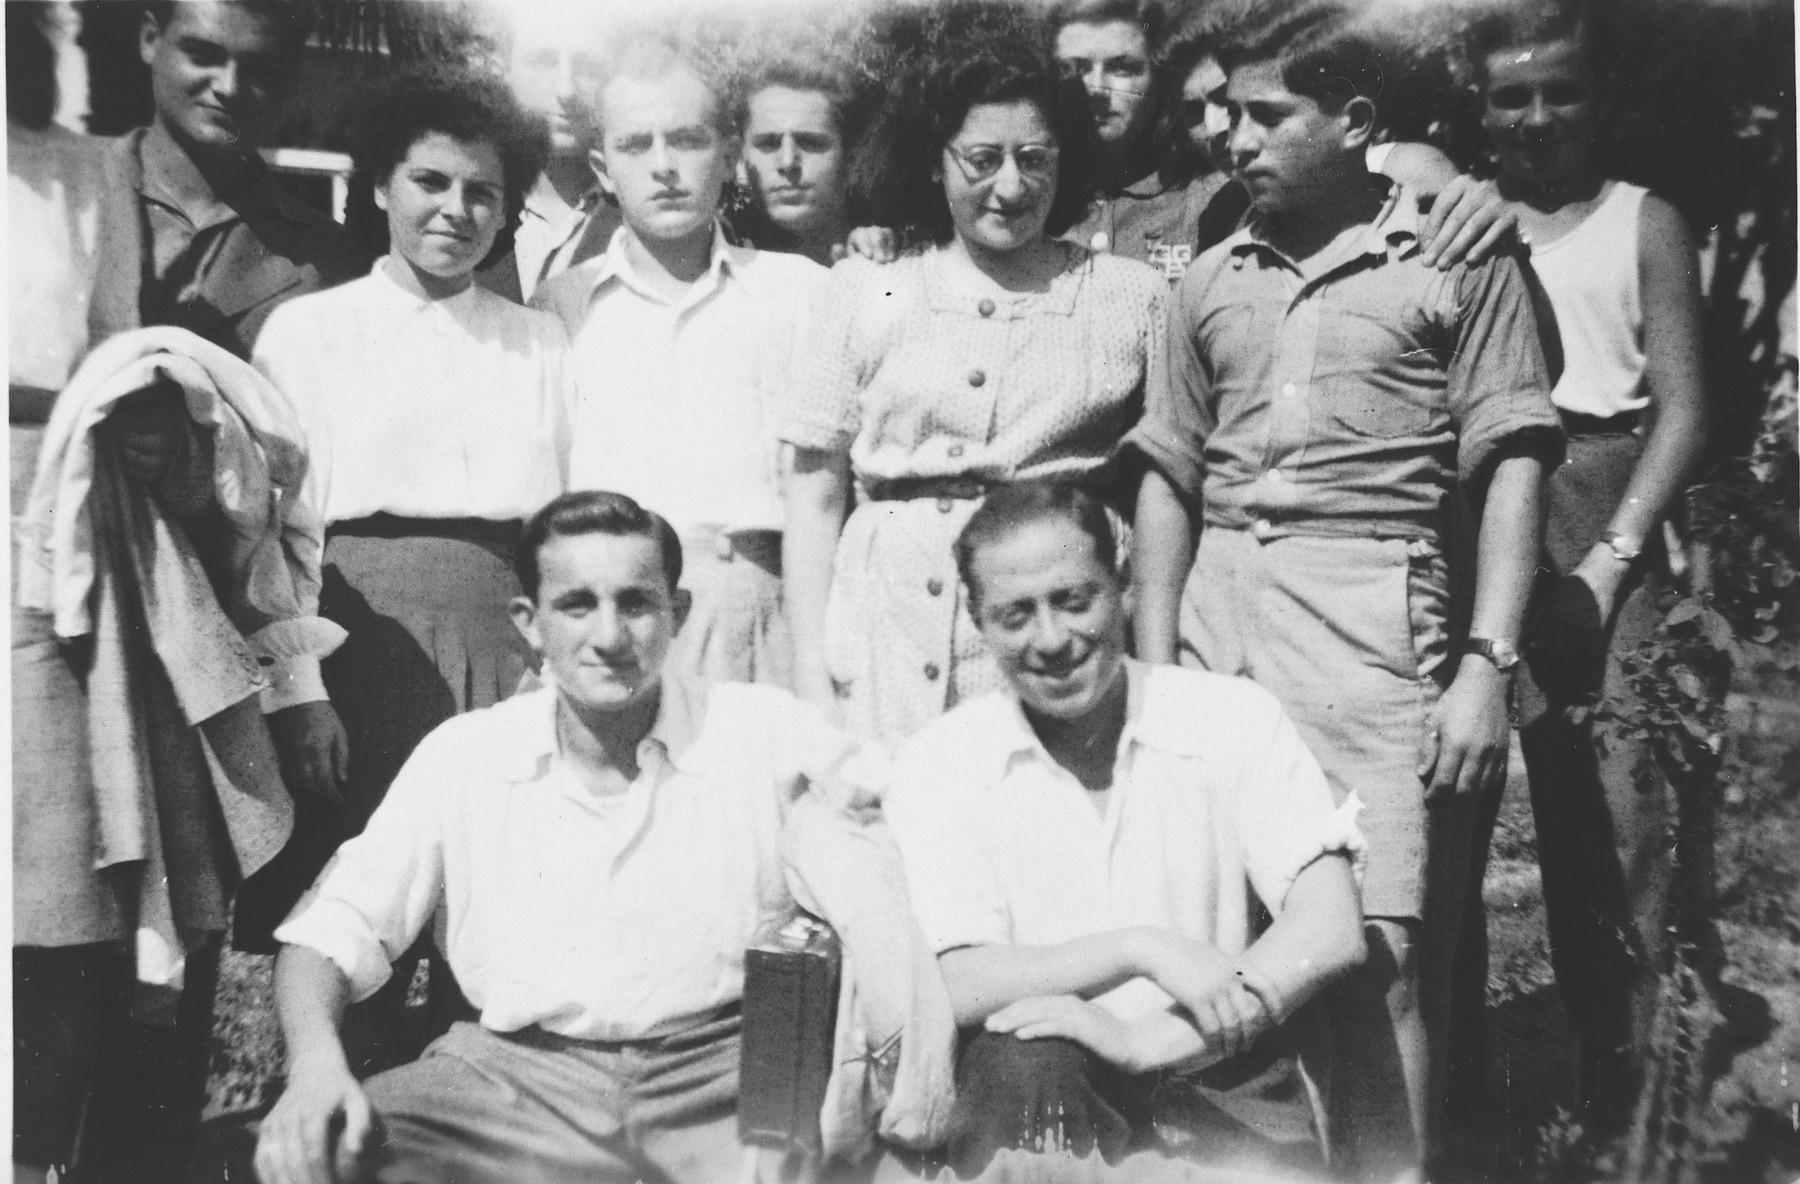 Group portrait of Jewish teenagers who came to Switzerland after their liberation from Buchenwald.  Among those pictured is Abraham Grajz (middle row, right).  Arthur Bornstein is standing in the back row on the far left. Stanley Appel is seated on the left.